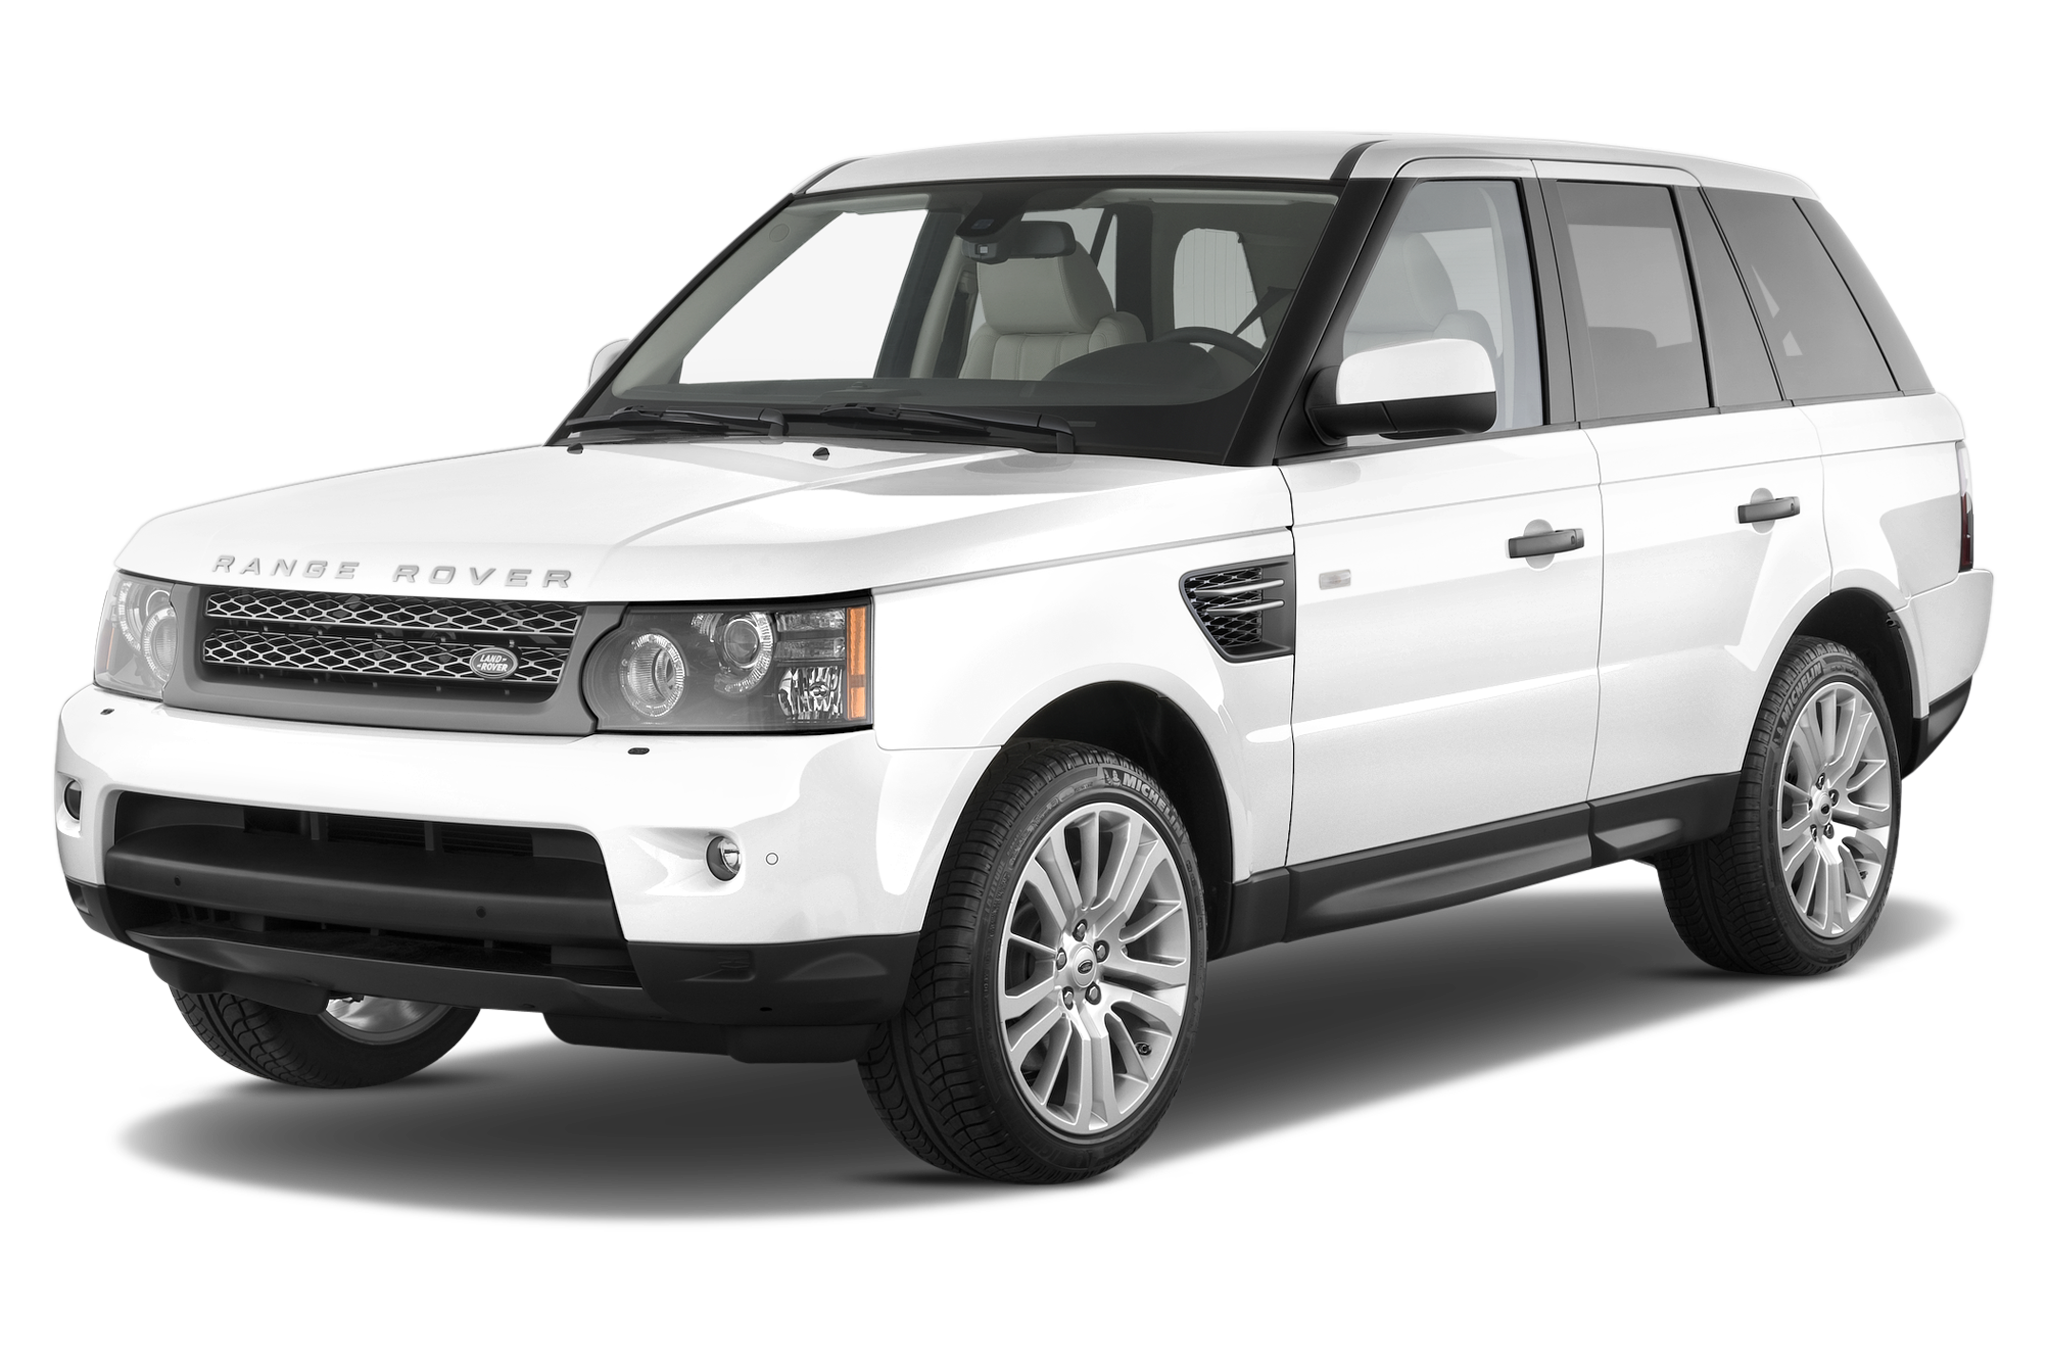 2017 land rover range rover sport clipart clipart library library Download Land Rover Range Rover Sport Clipart HQ PNG Image | FreePNGImg clipart library library